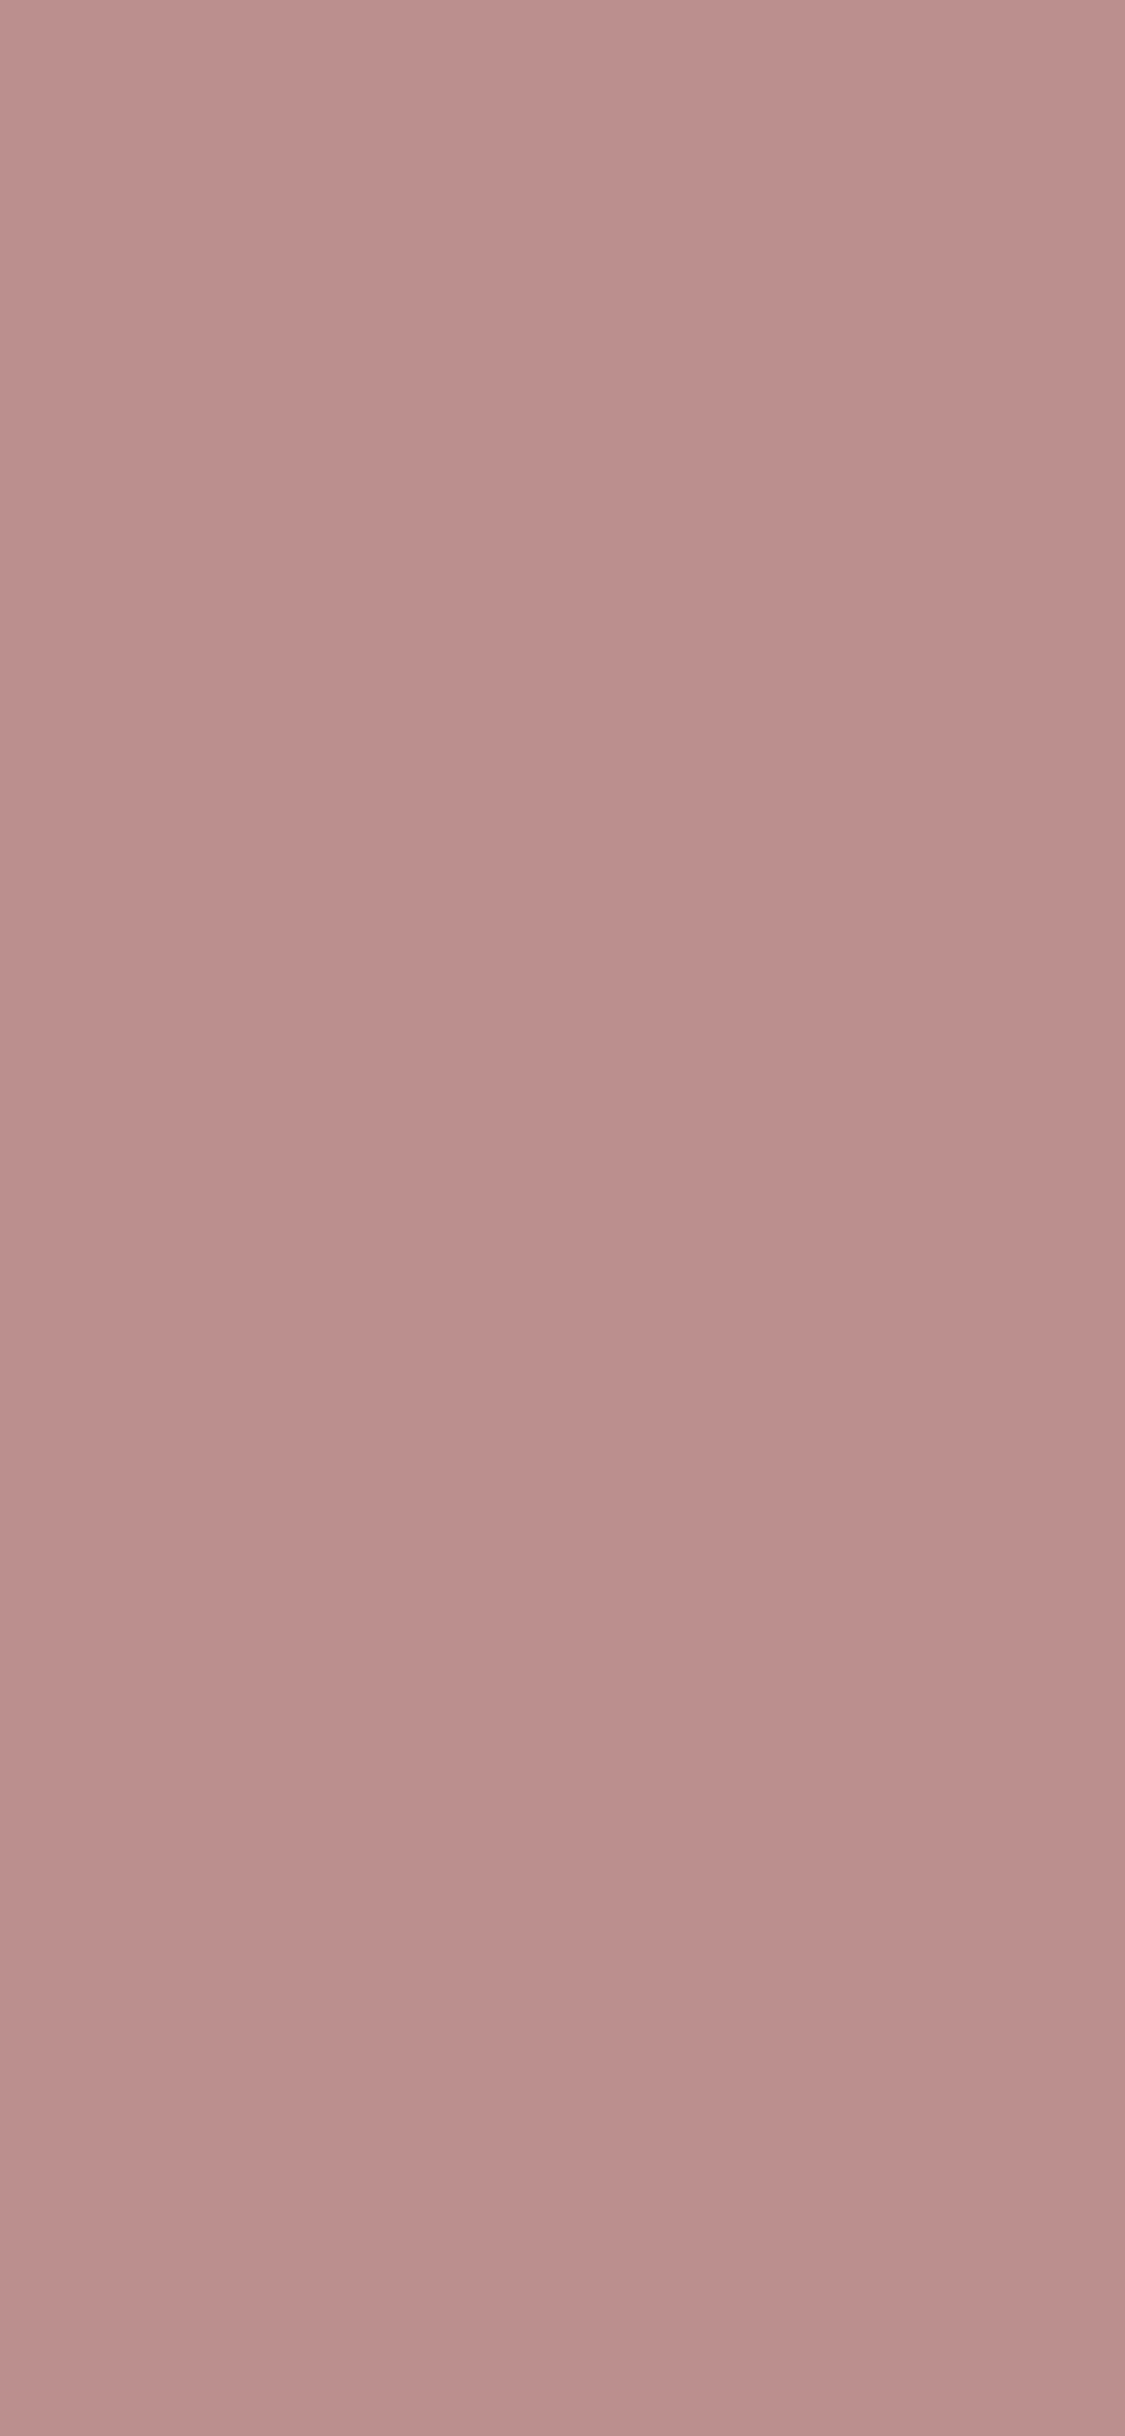 1125x2436 Rosy Brown Solid Color Background